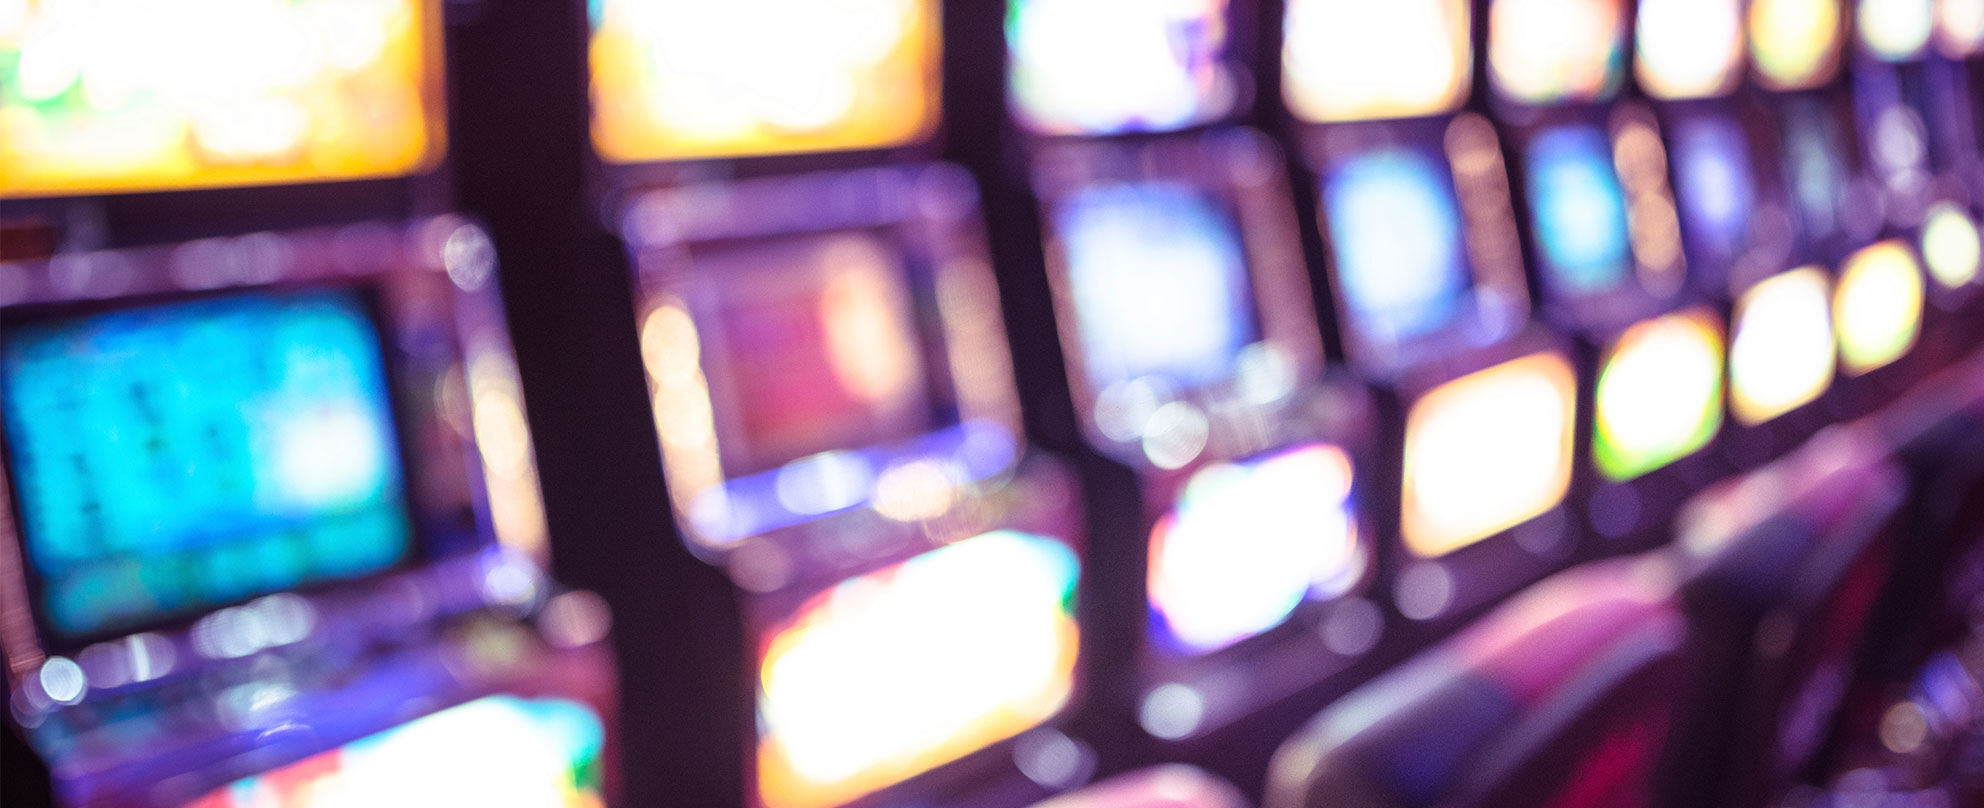 Blurred row of lit up poker machines